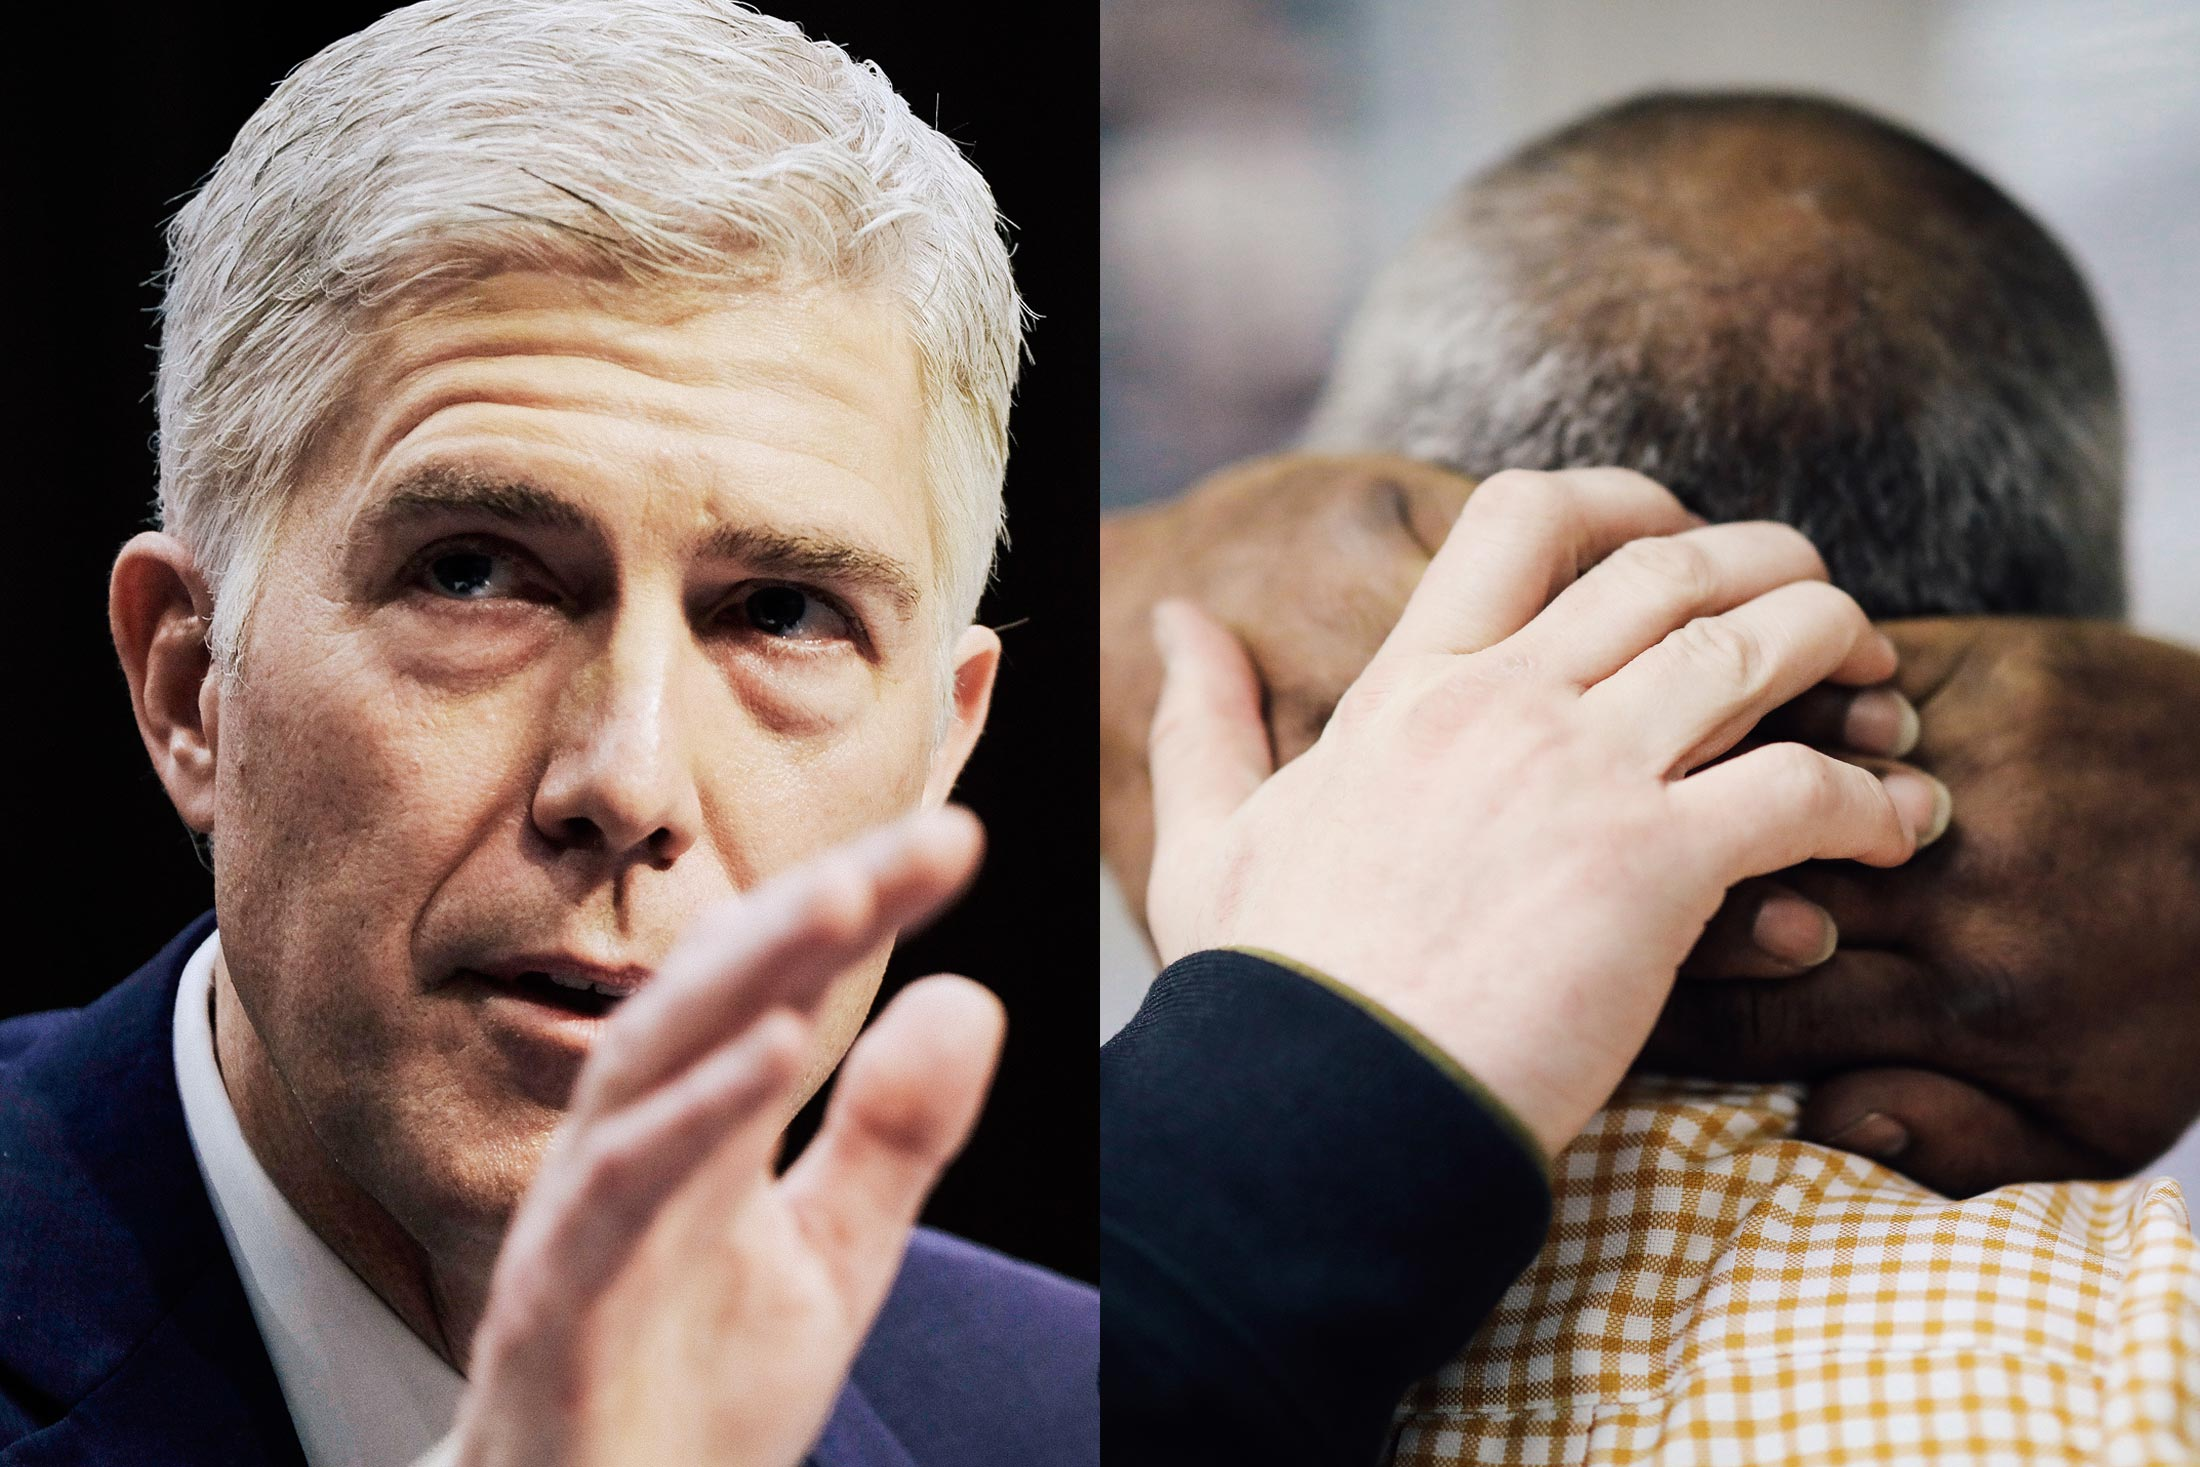 Left: Then–U.S. Supreme Court nominee Neil Gorsuch at his Senate Judiciary Committee confirmation hearing in March 2017. Right: An Immigration and Customs Enforcement officer frisks an immigrant at a processing center after arresting him on April 11 in New York.